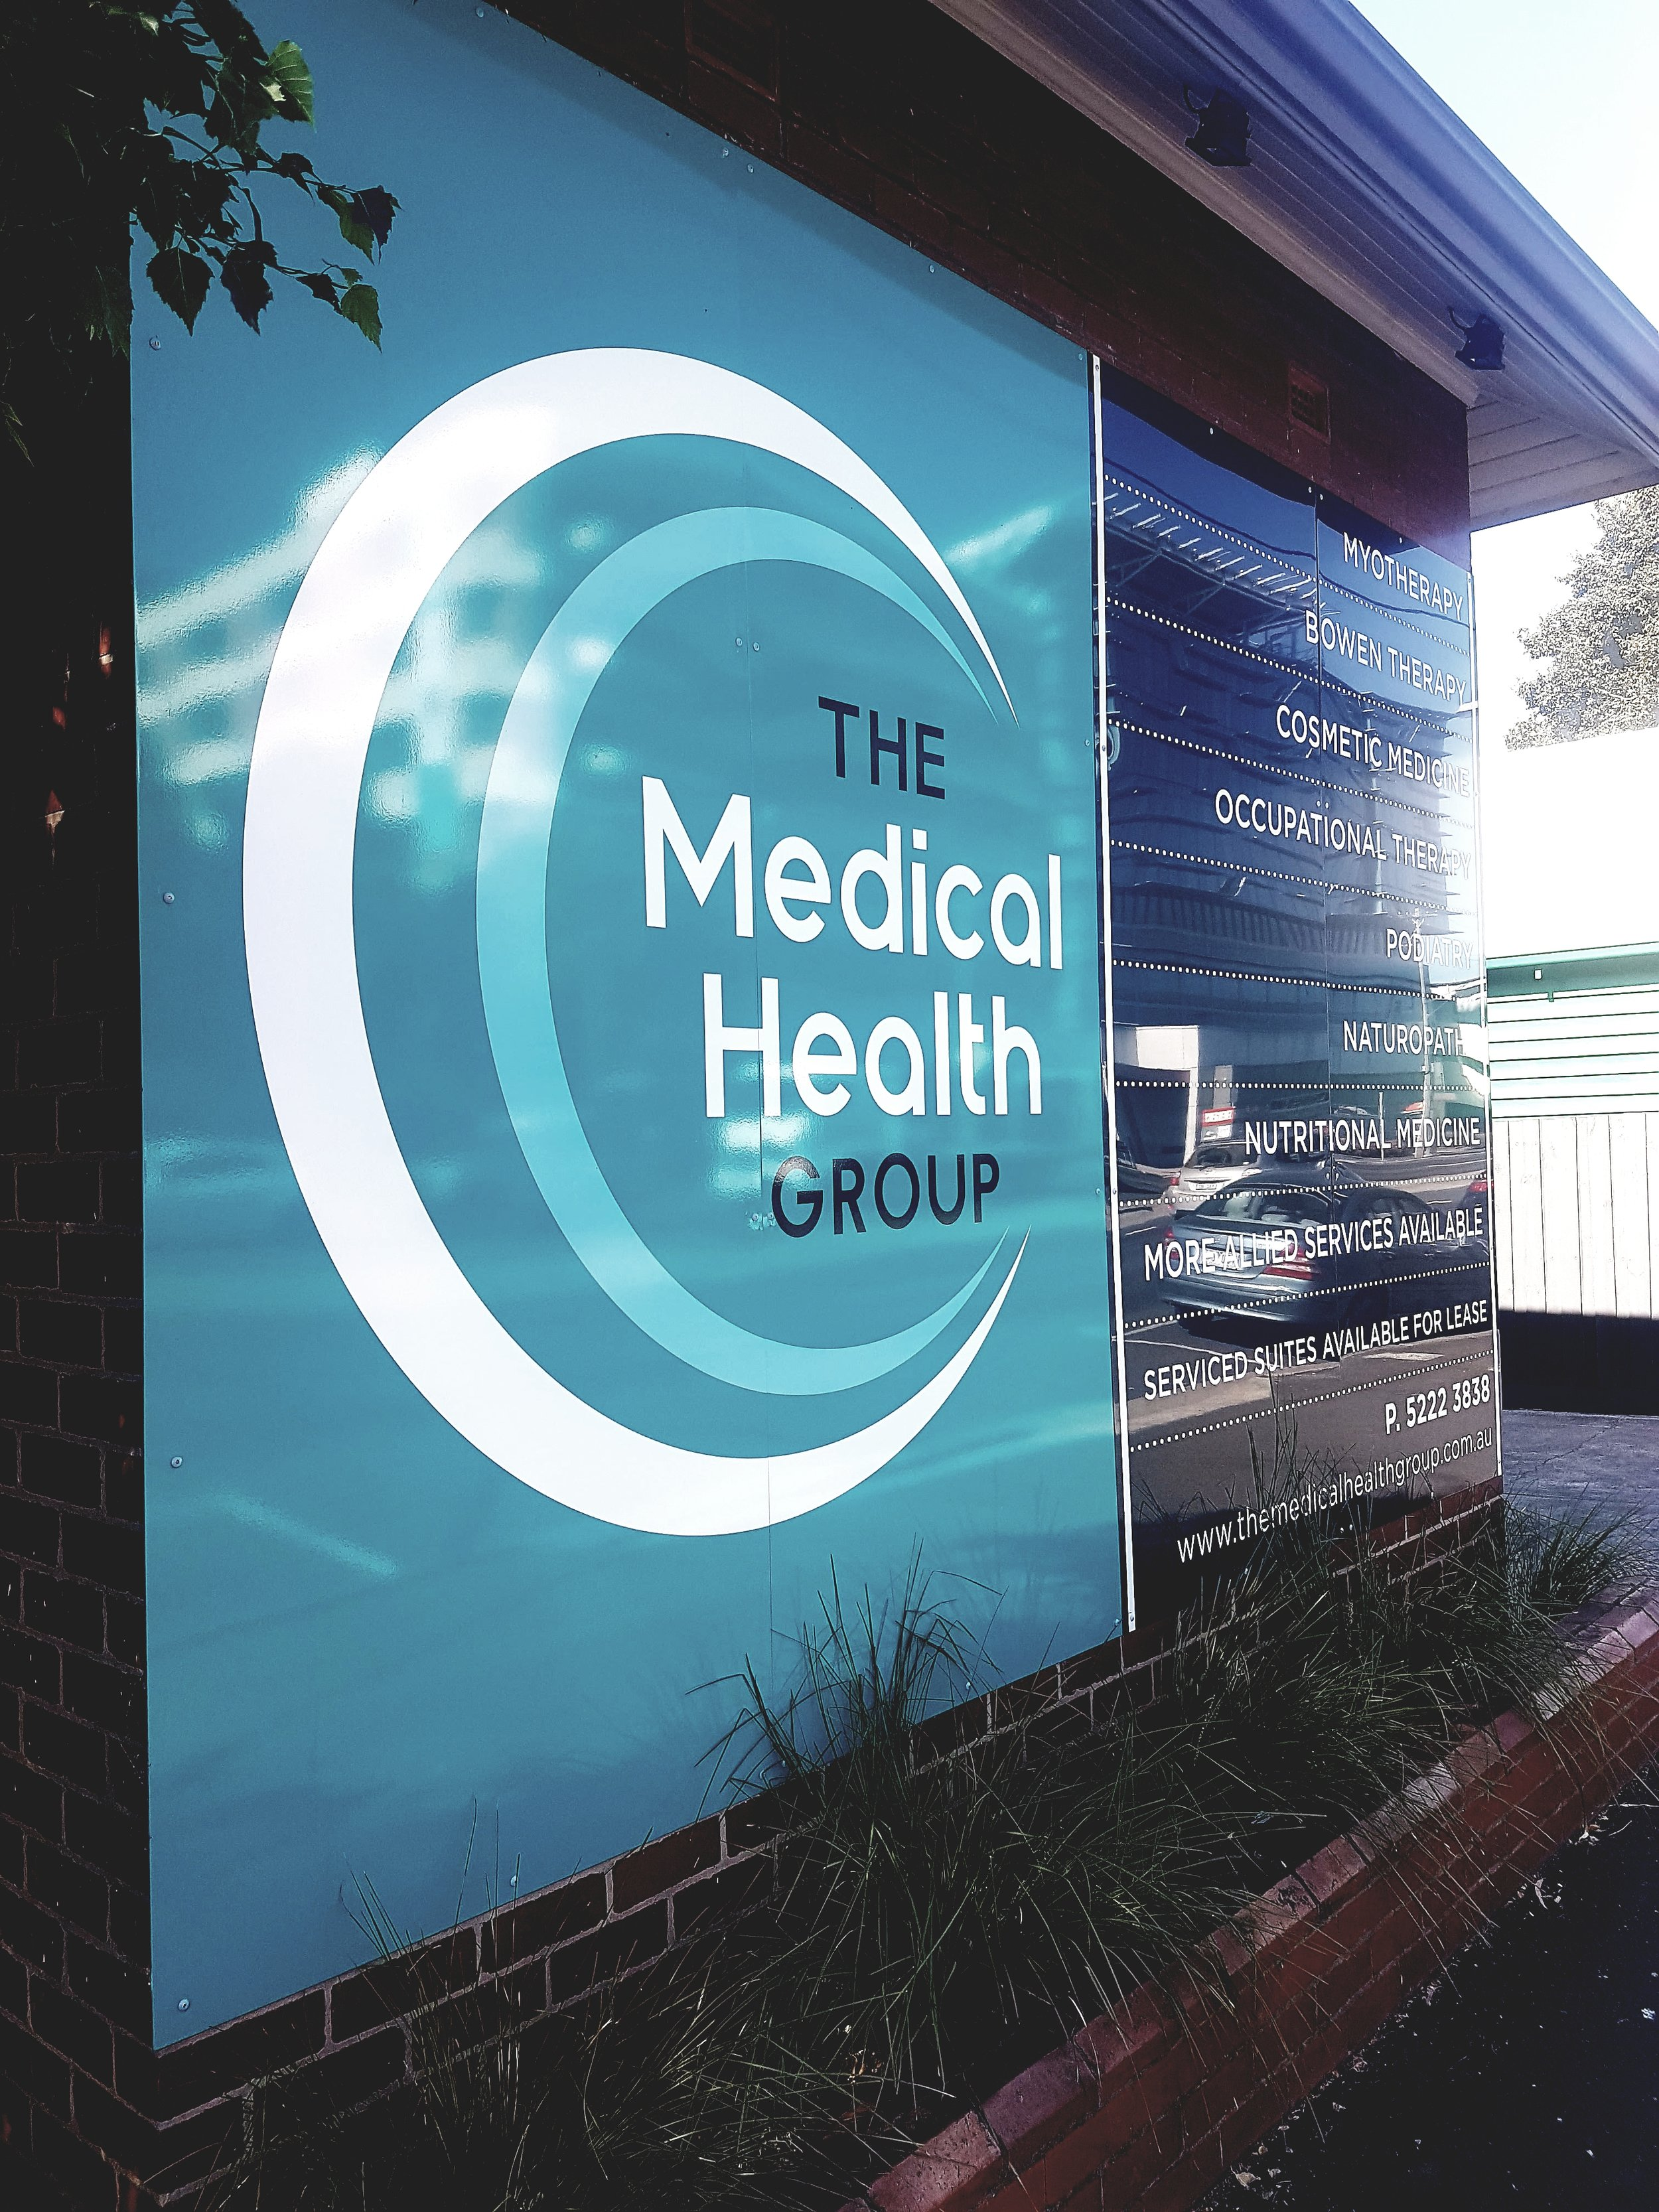 Living Holistic Health is located here, within the Medical Health Group, at 275 Ryrie Street Geelong